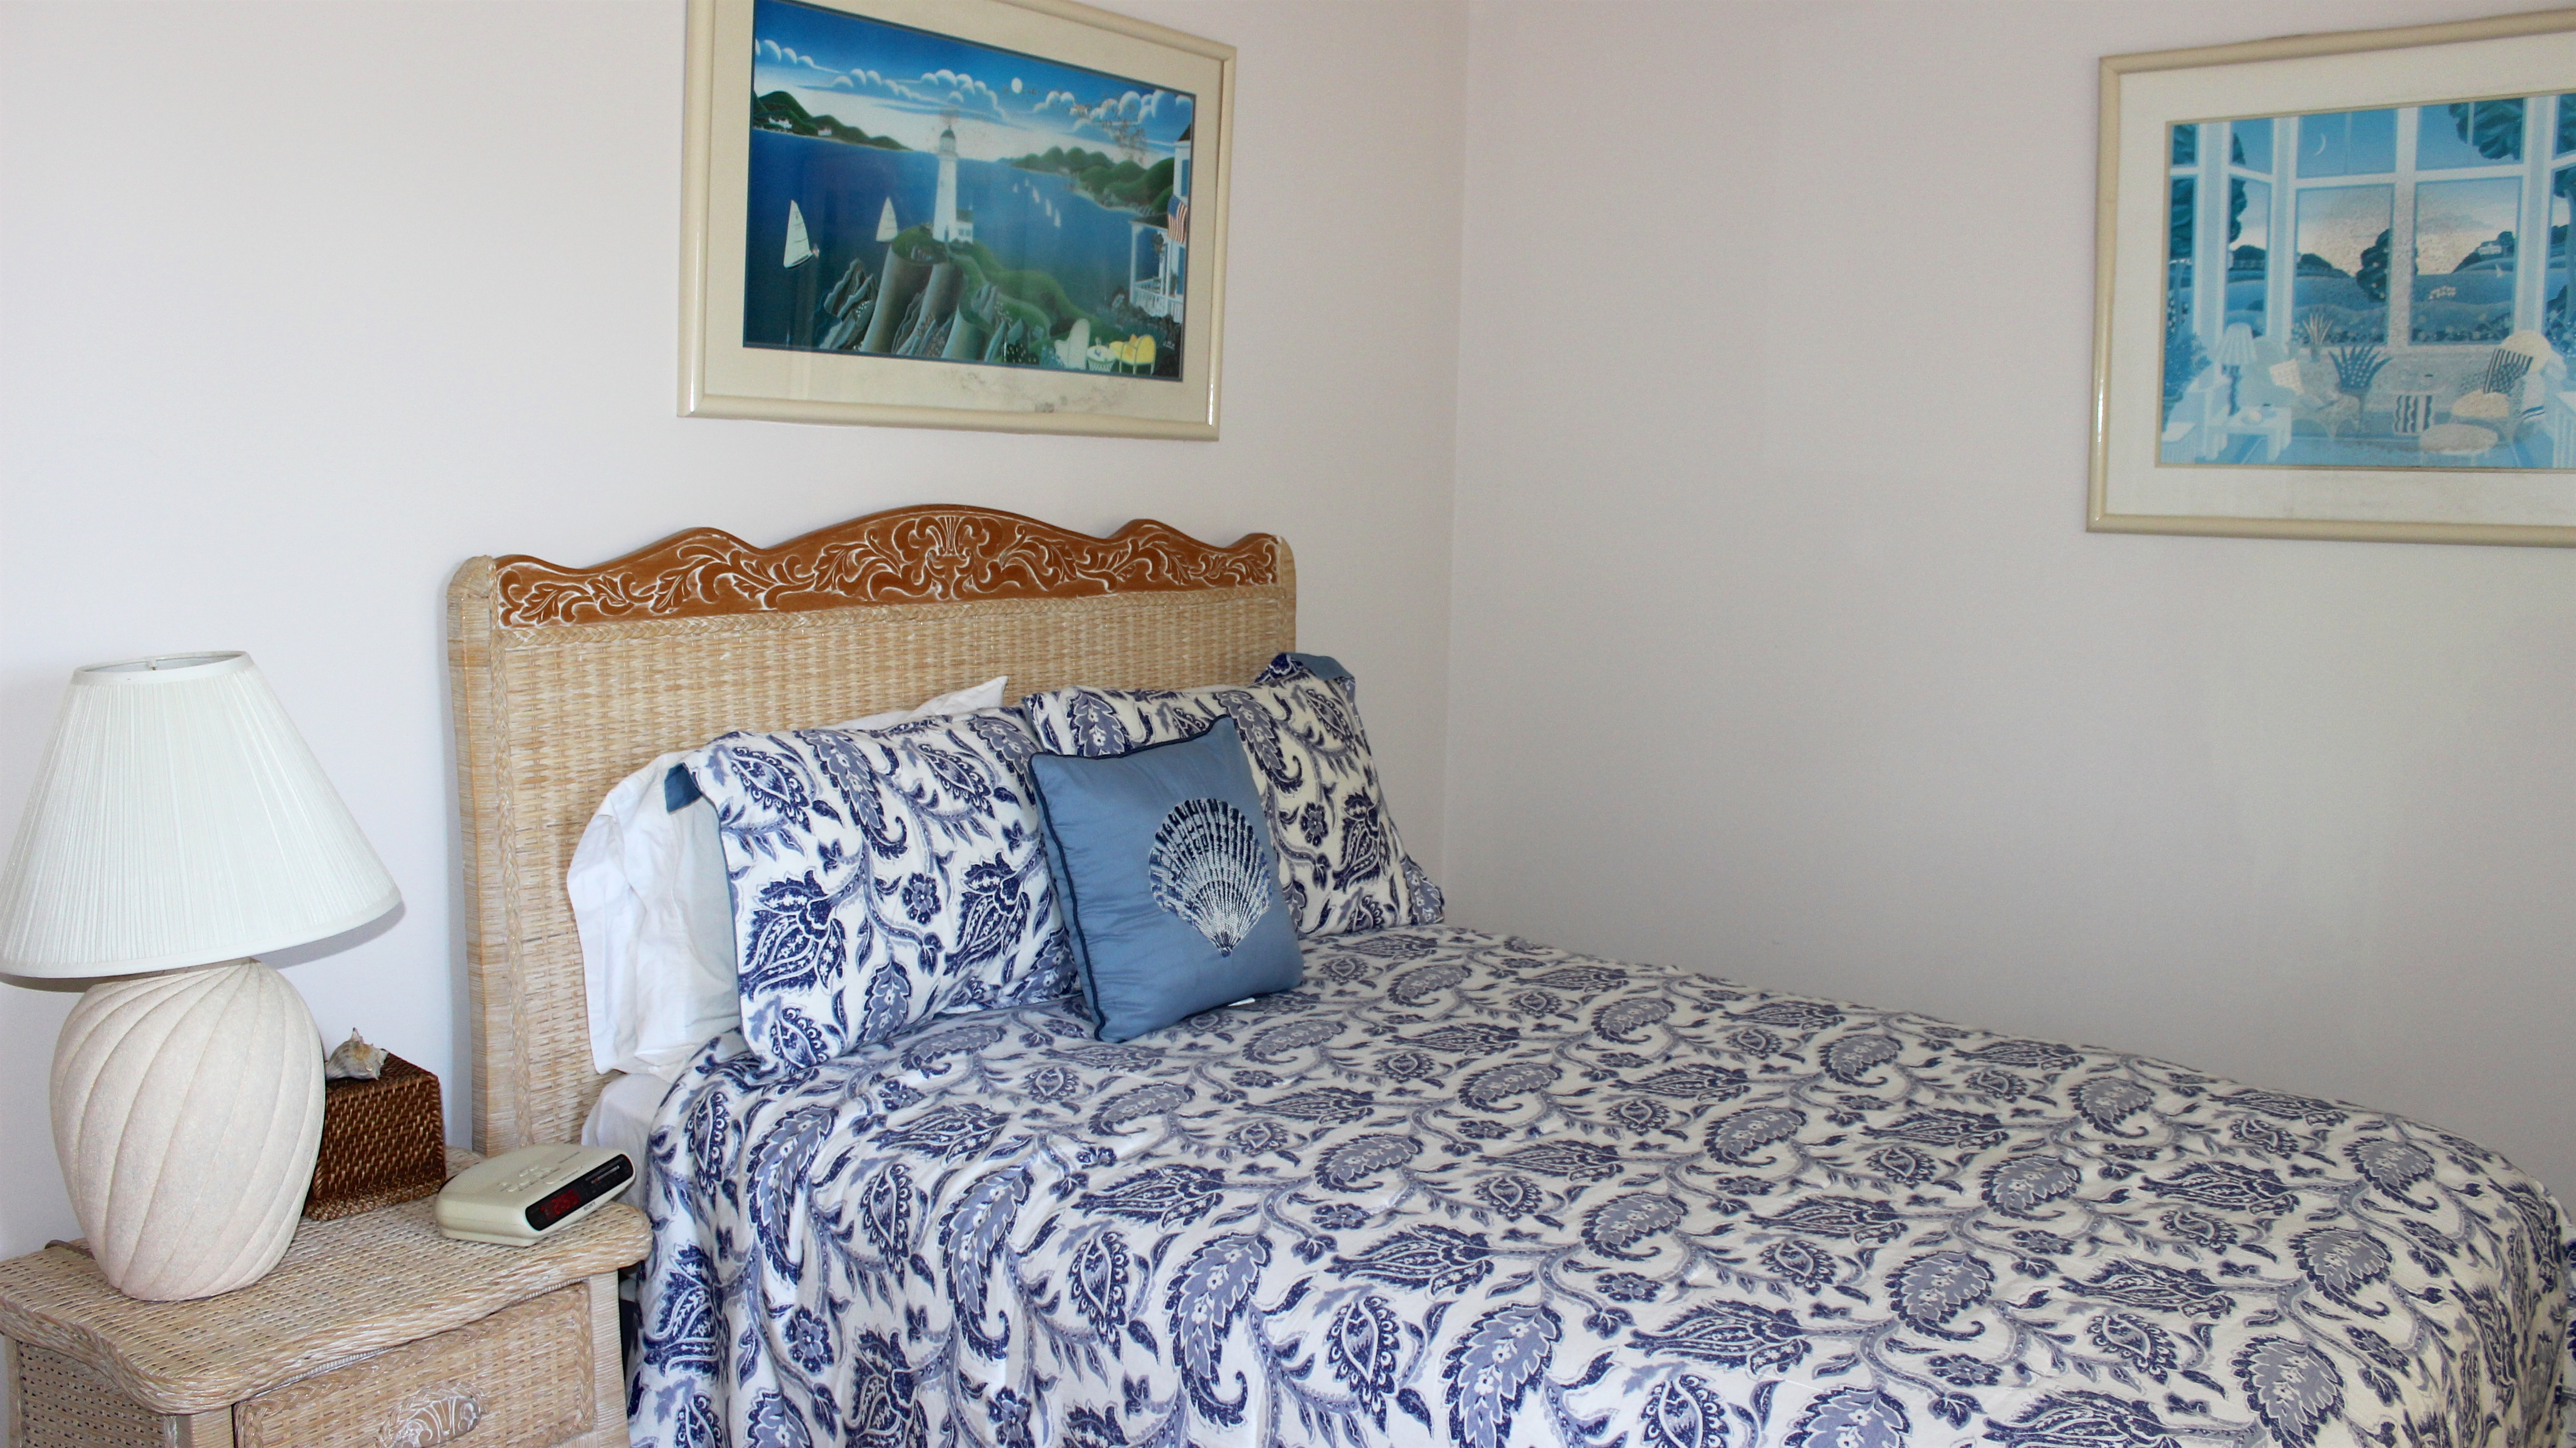 The 2nd bedroom on this floor has a full bed & TV.